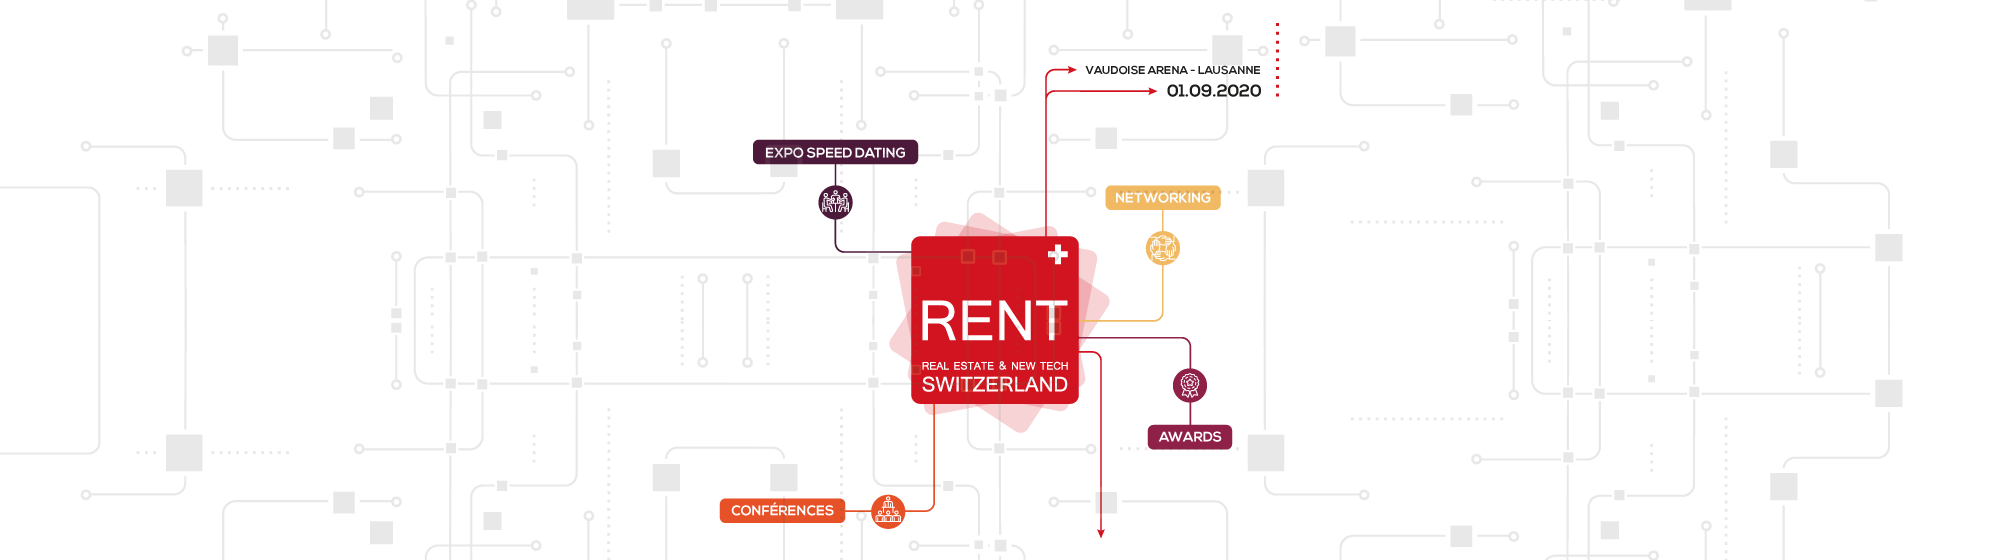 Rent switzerland 2020 - Privilege Events